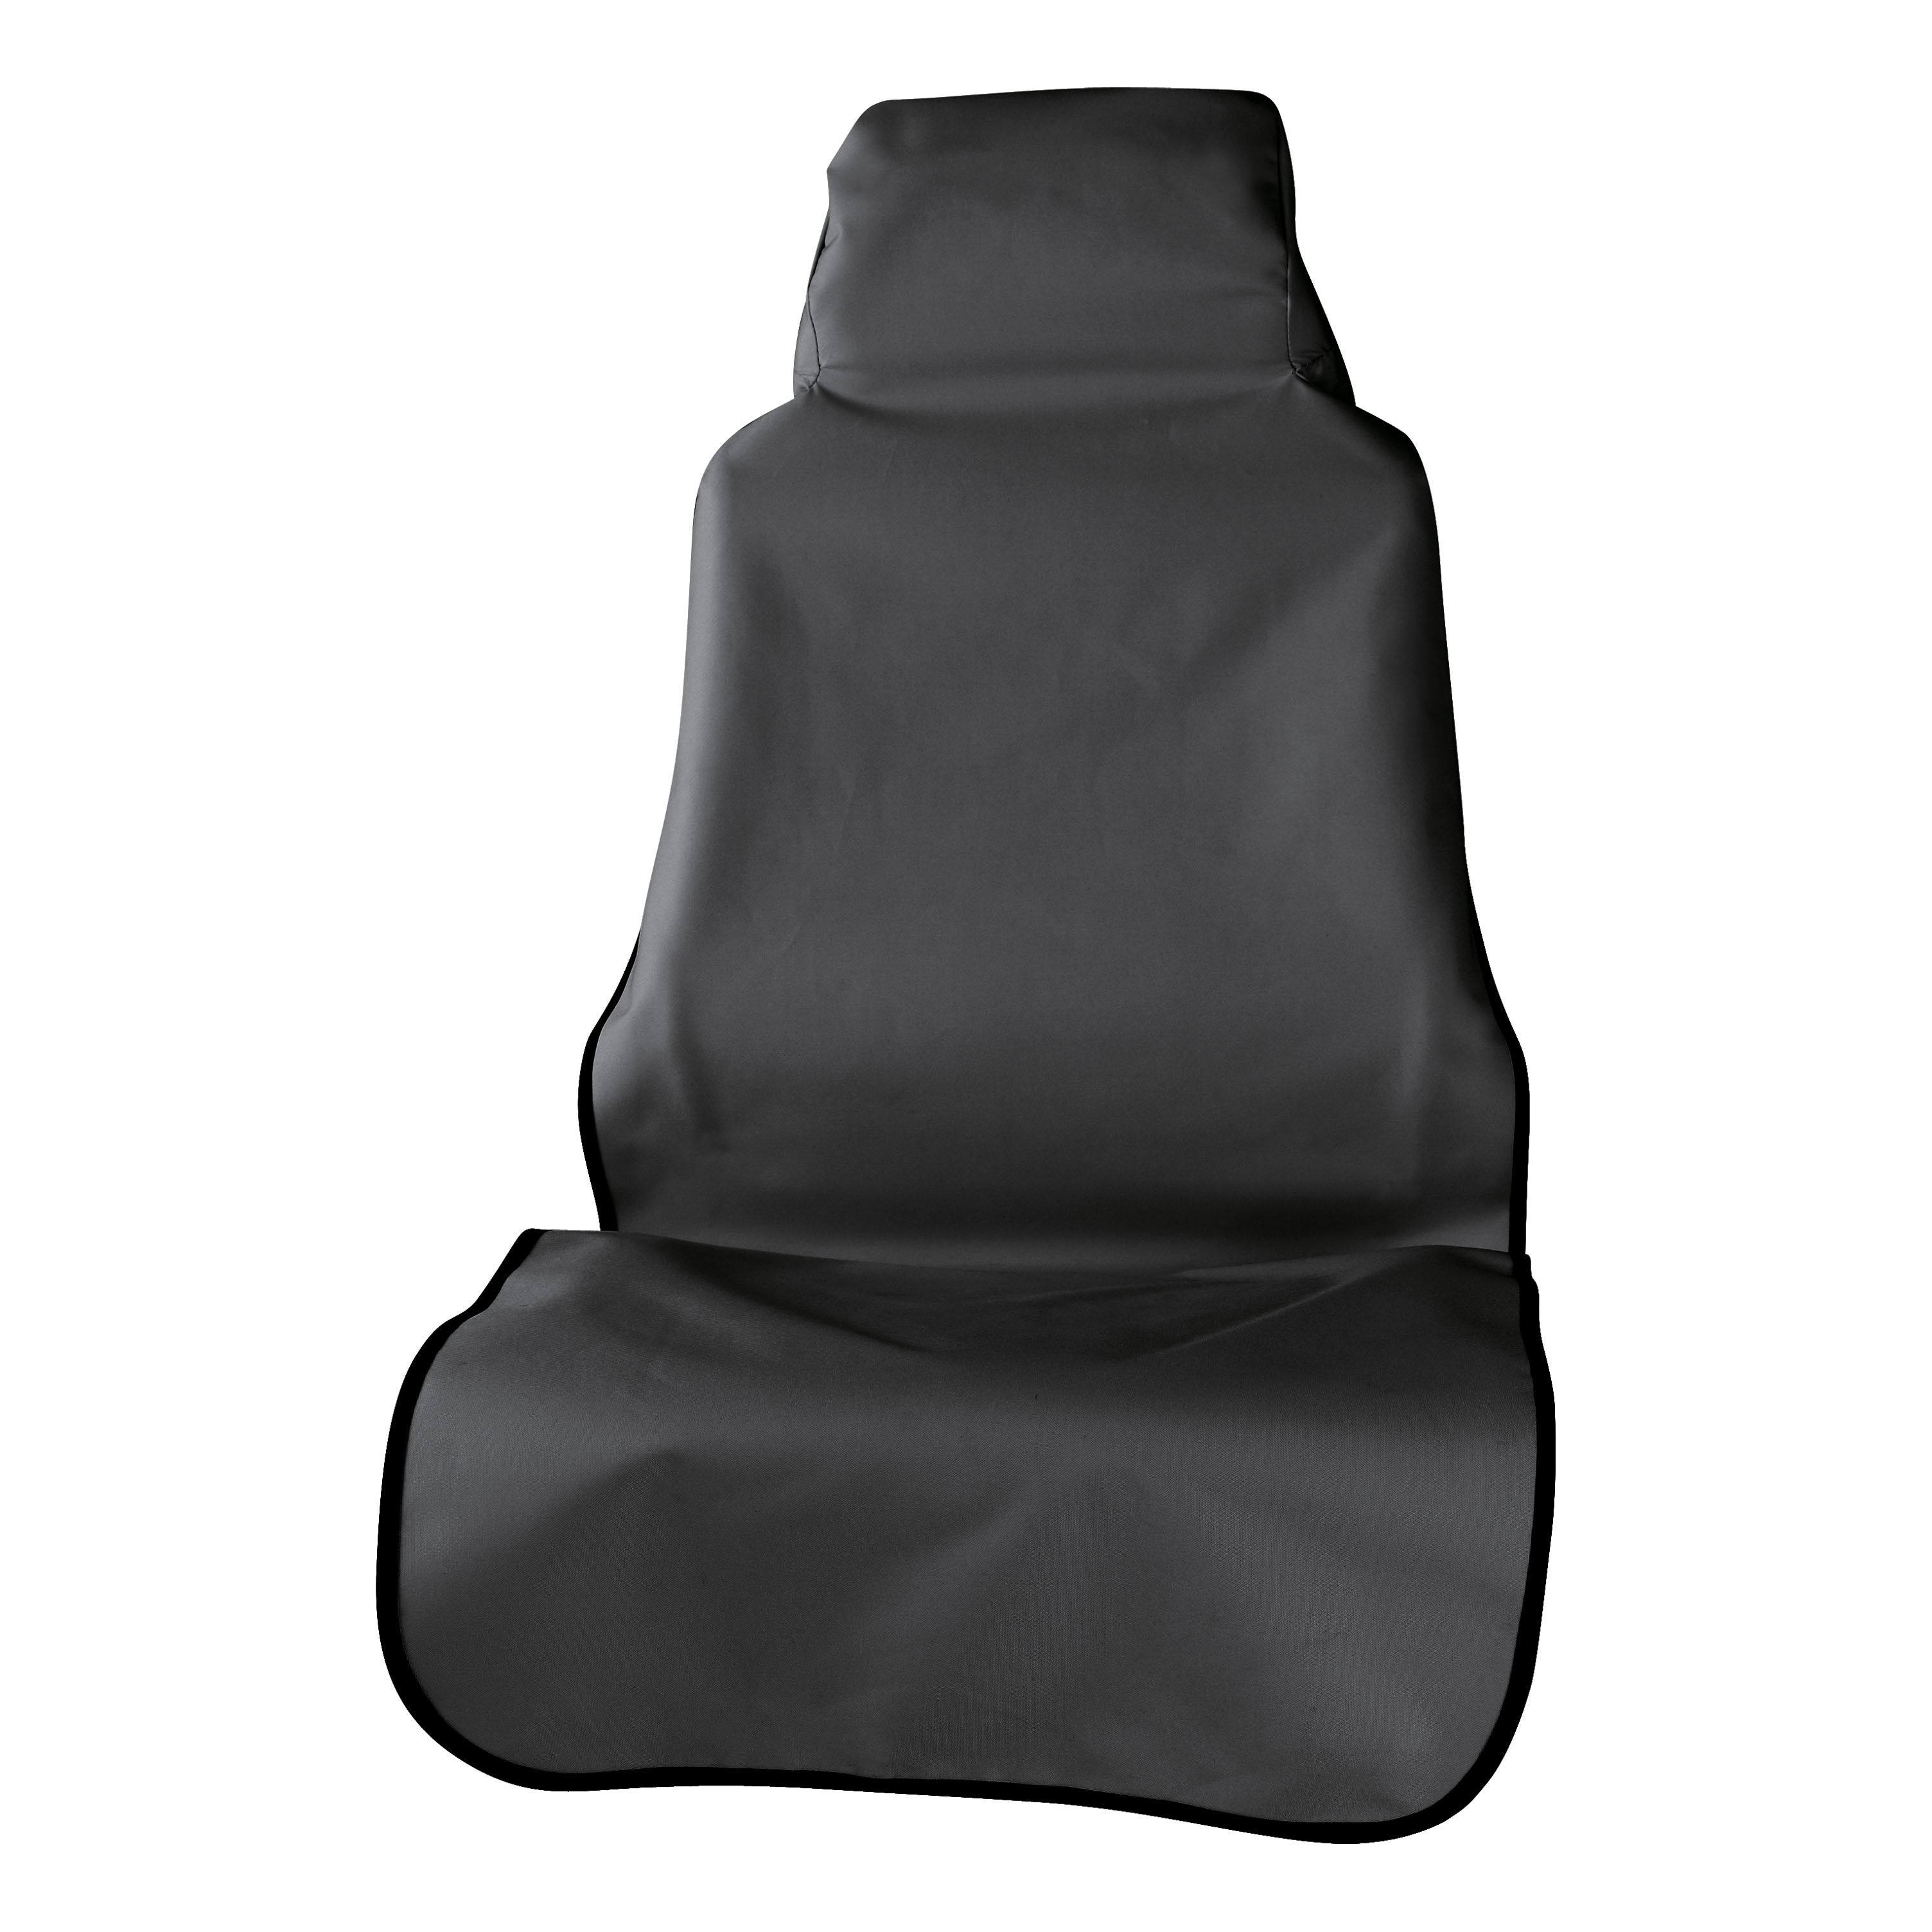 Aries Seat Defender Bucket Seat Cover - Black